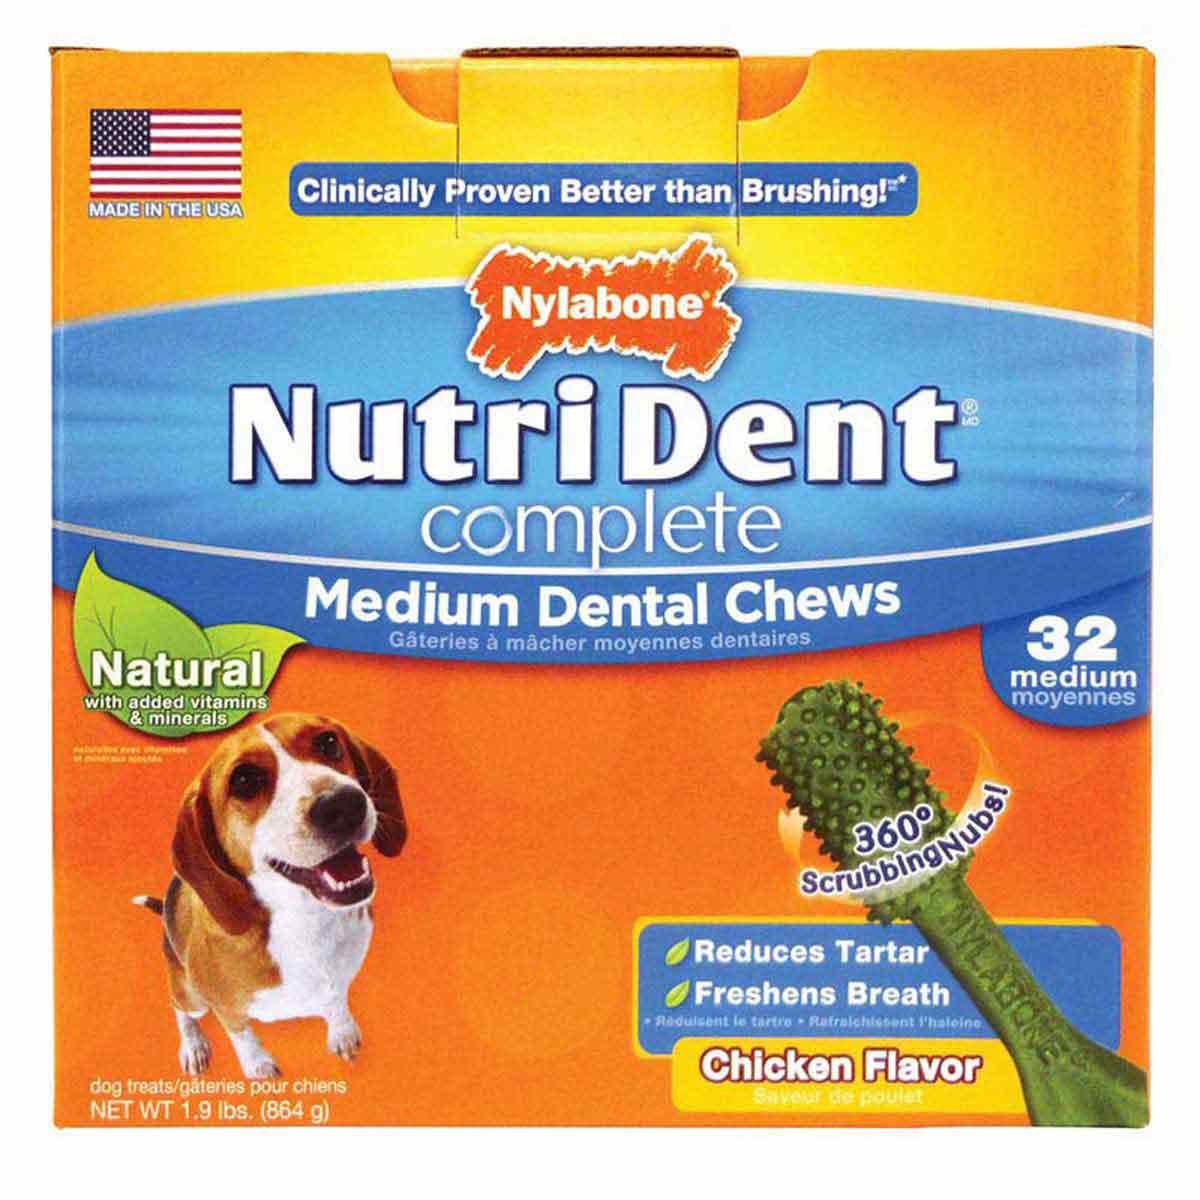 Nylabone Nutri Dent Complete Adult Chicken Dental Chews 32 Count